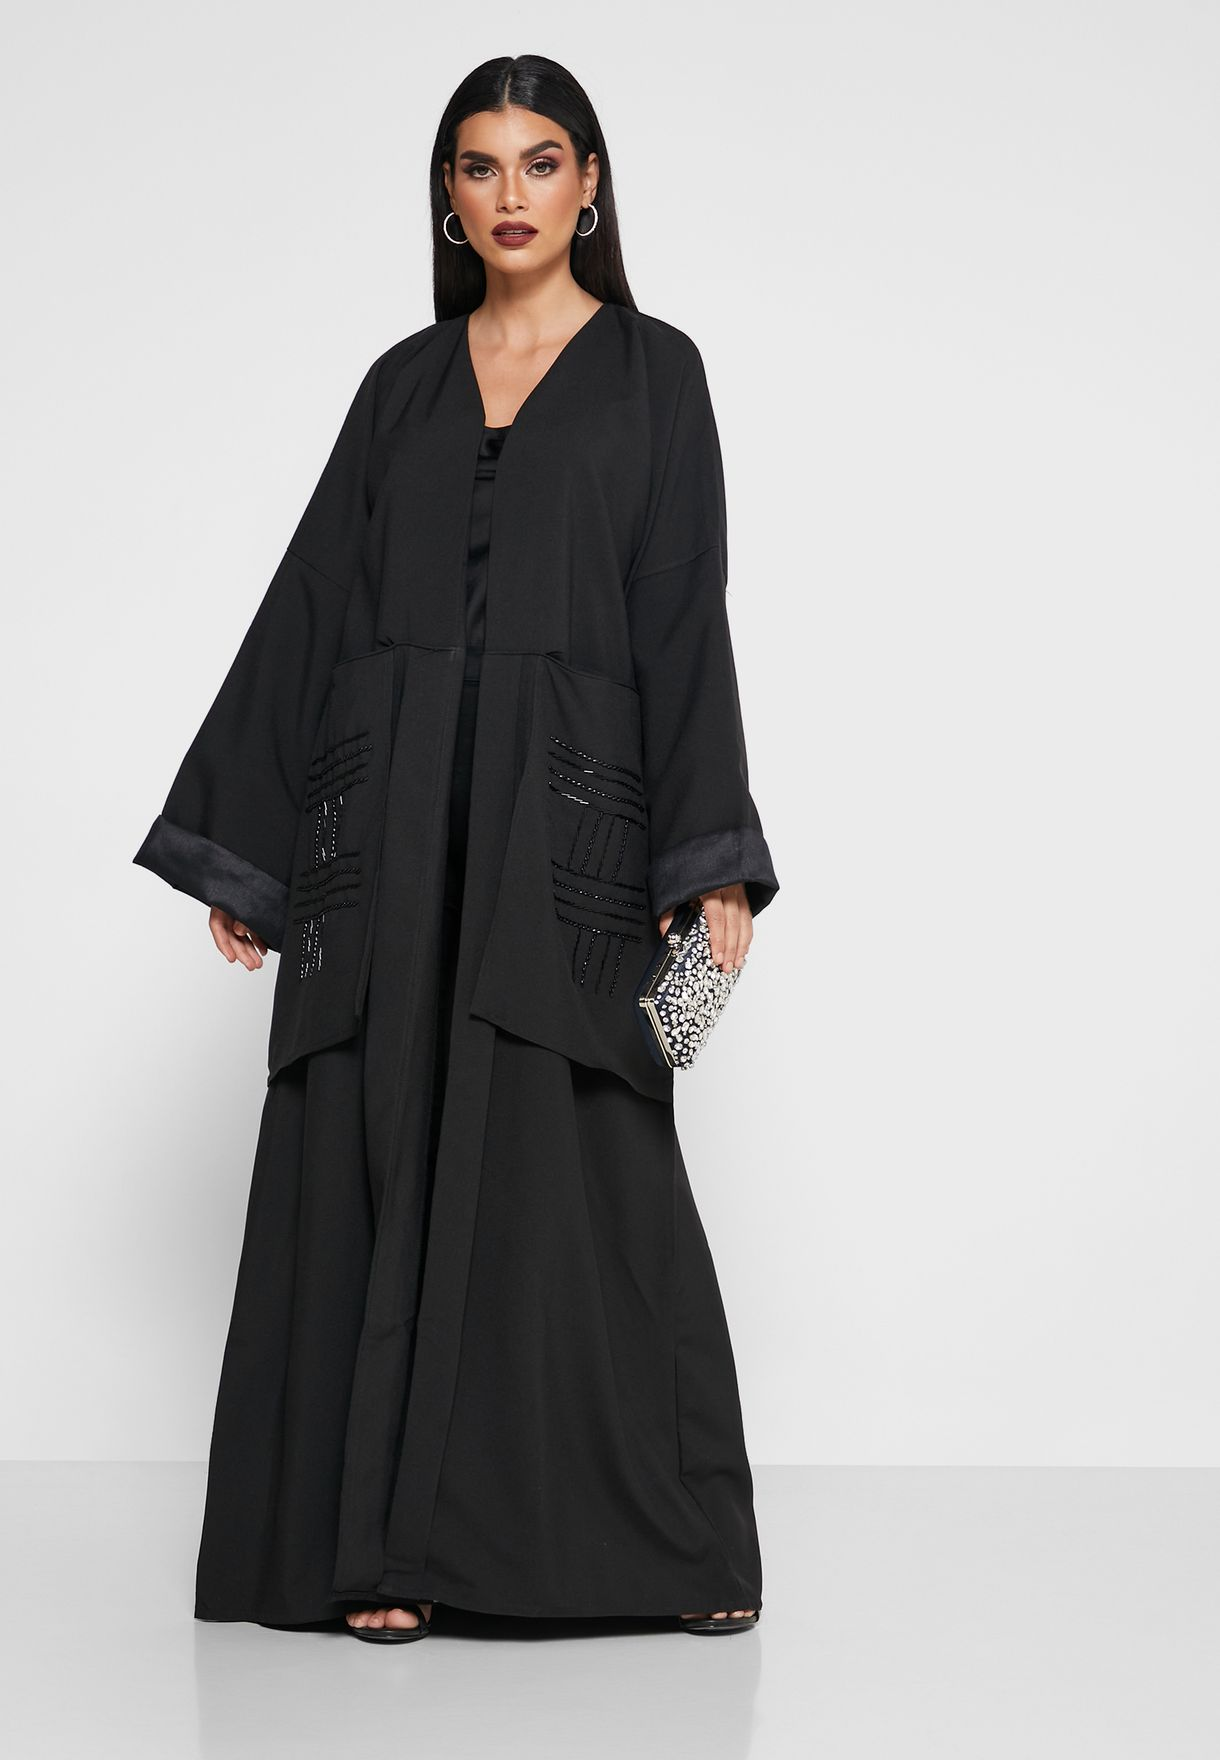 Sequin Detail Embroidered Abaya